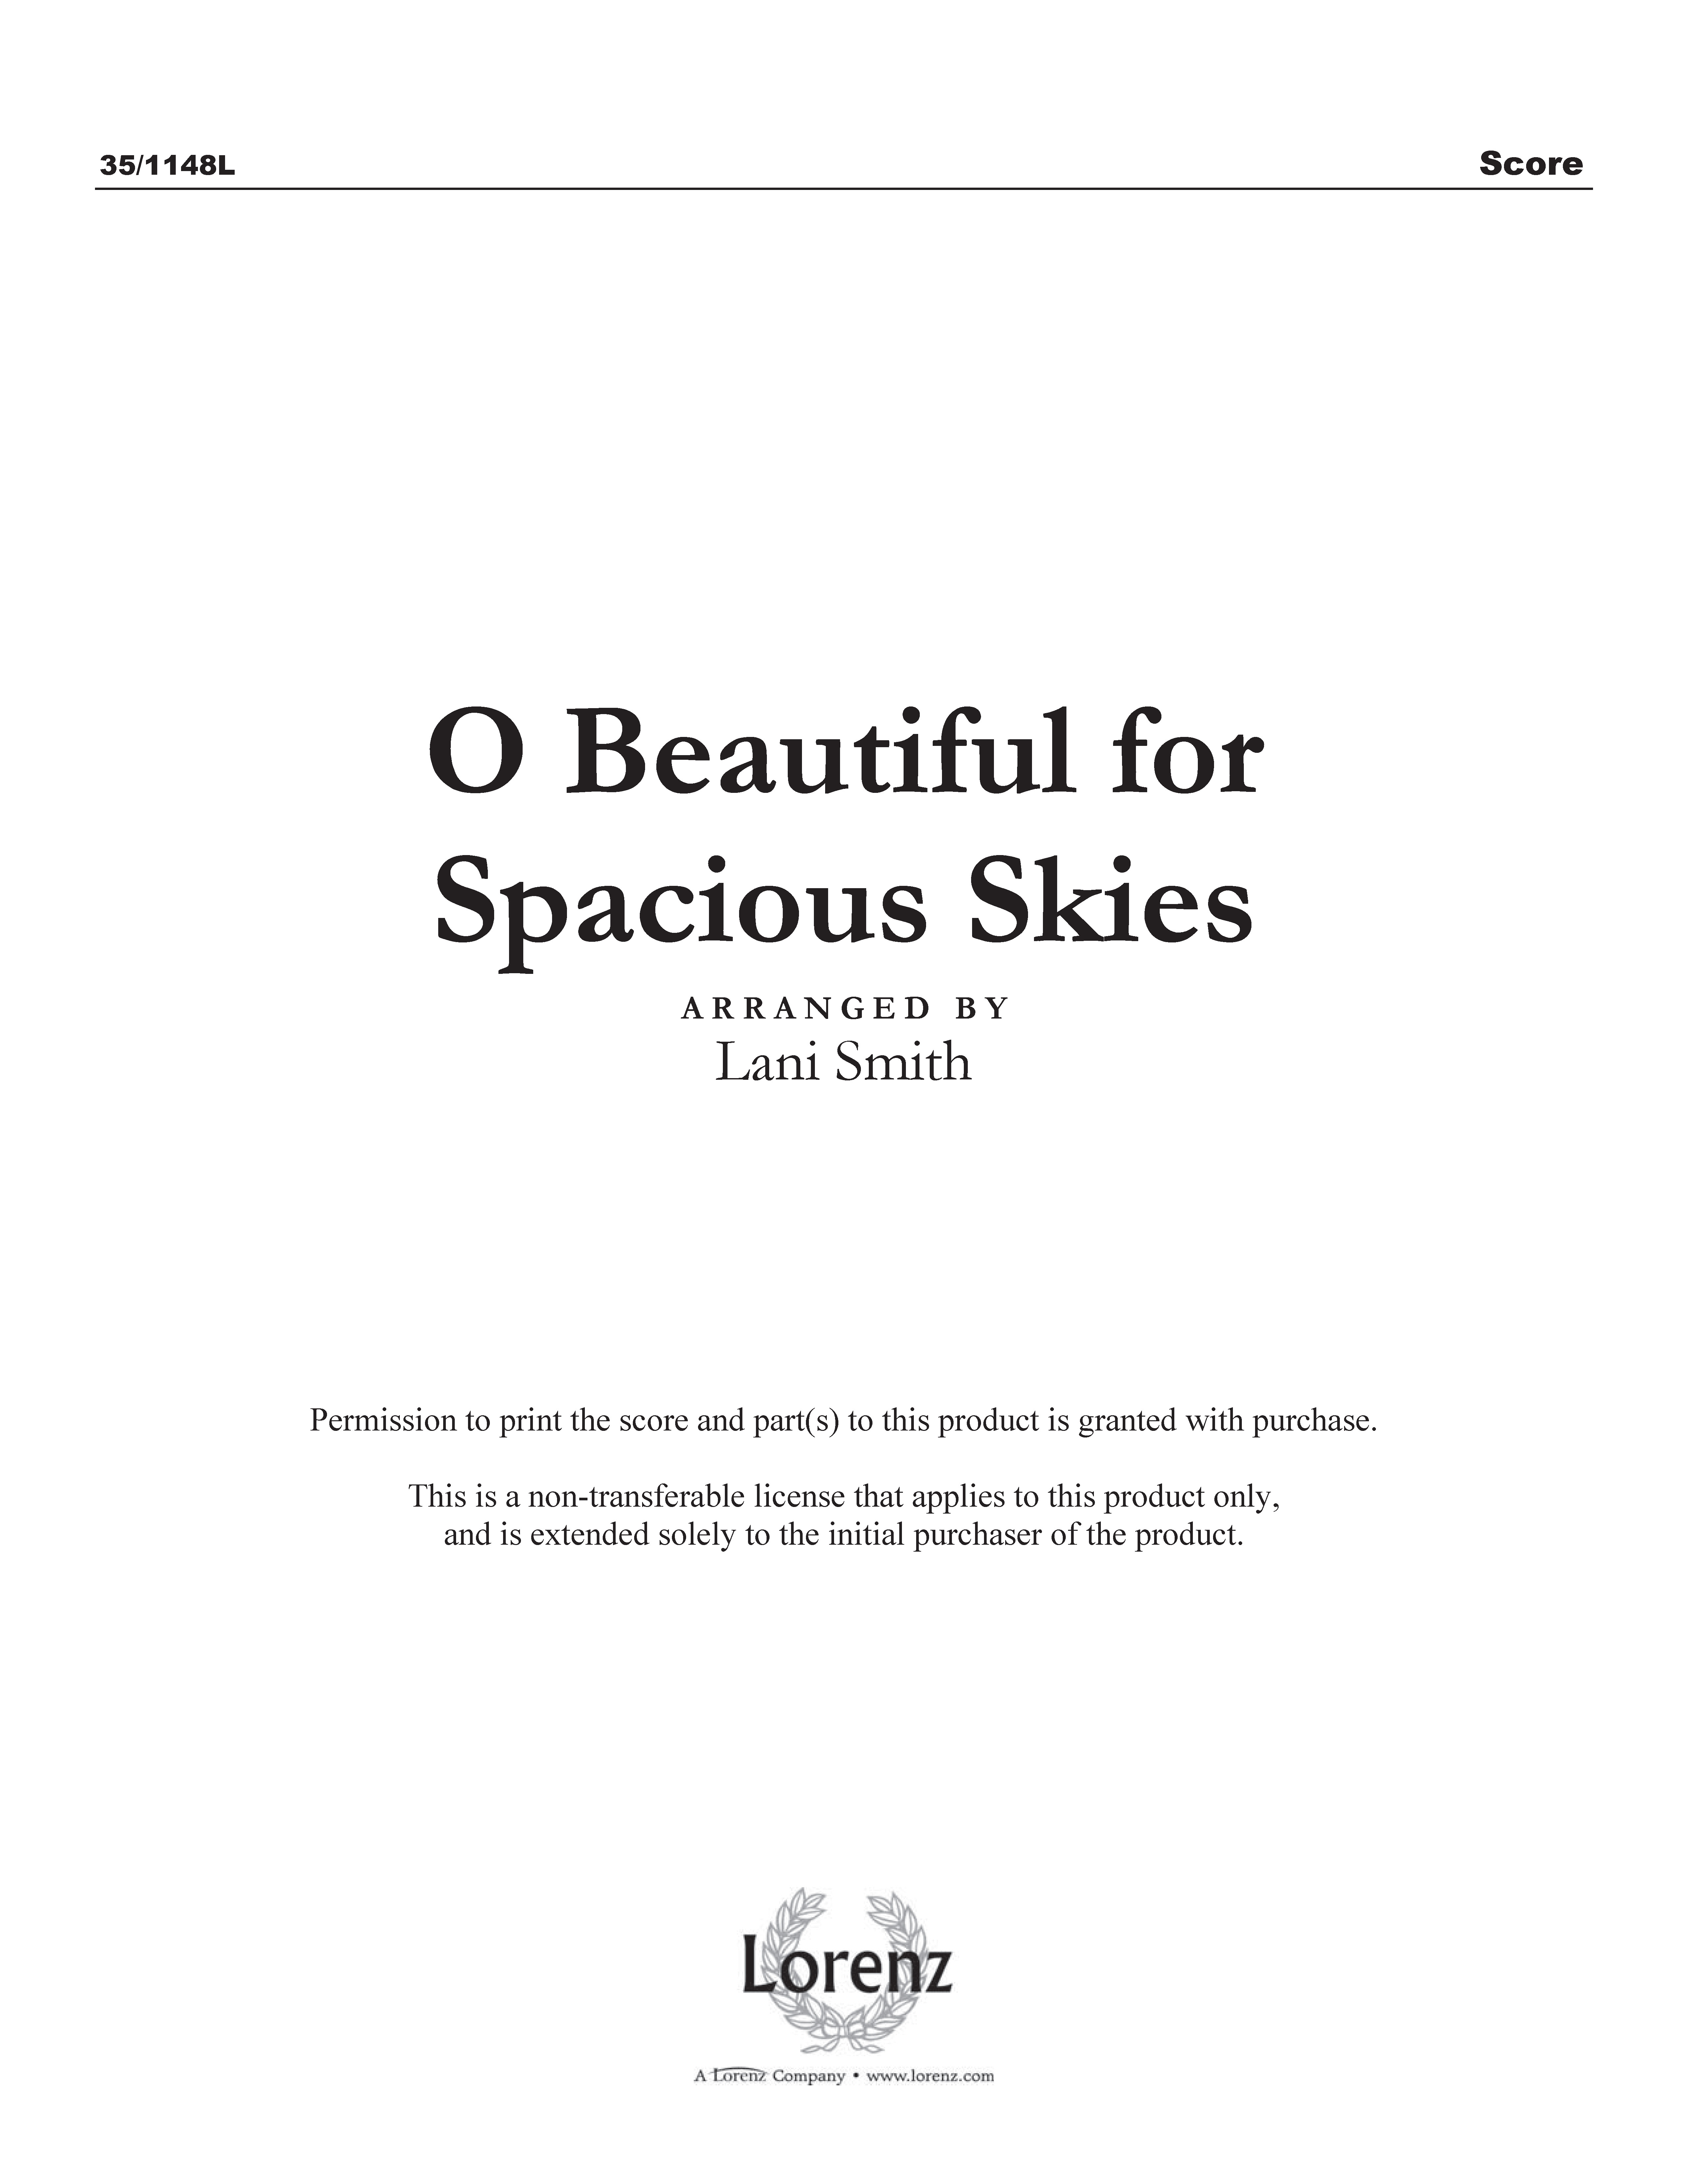 O Beautiful for Spacious Skies (Digital Delivery)